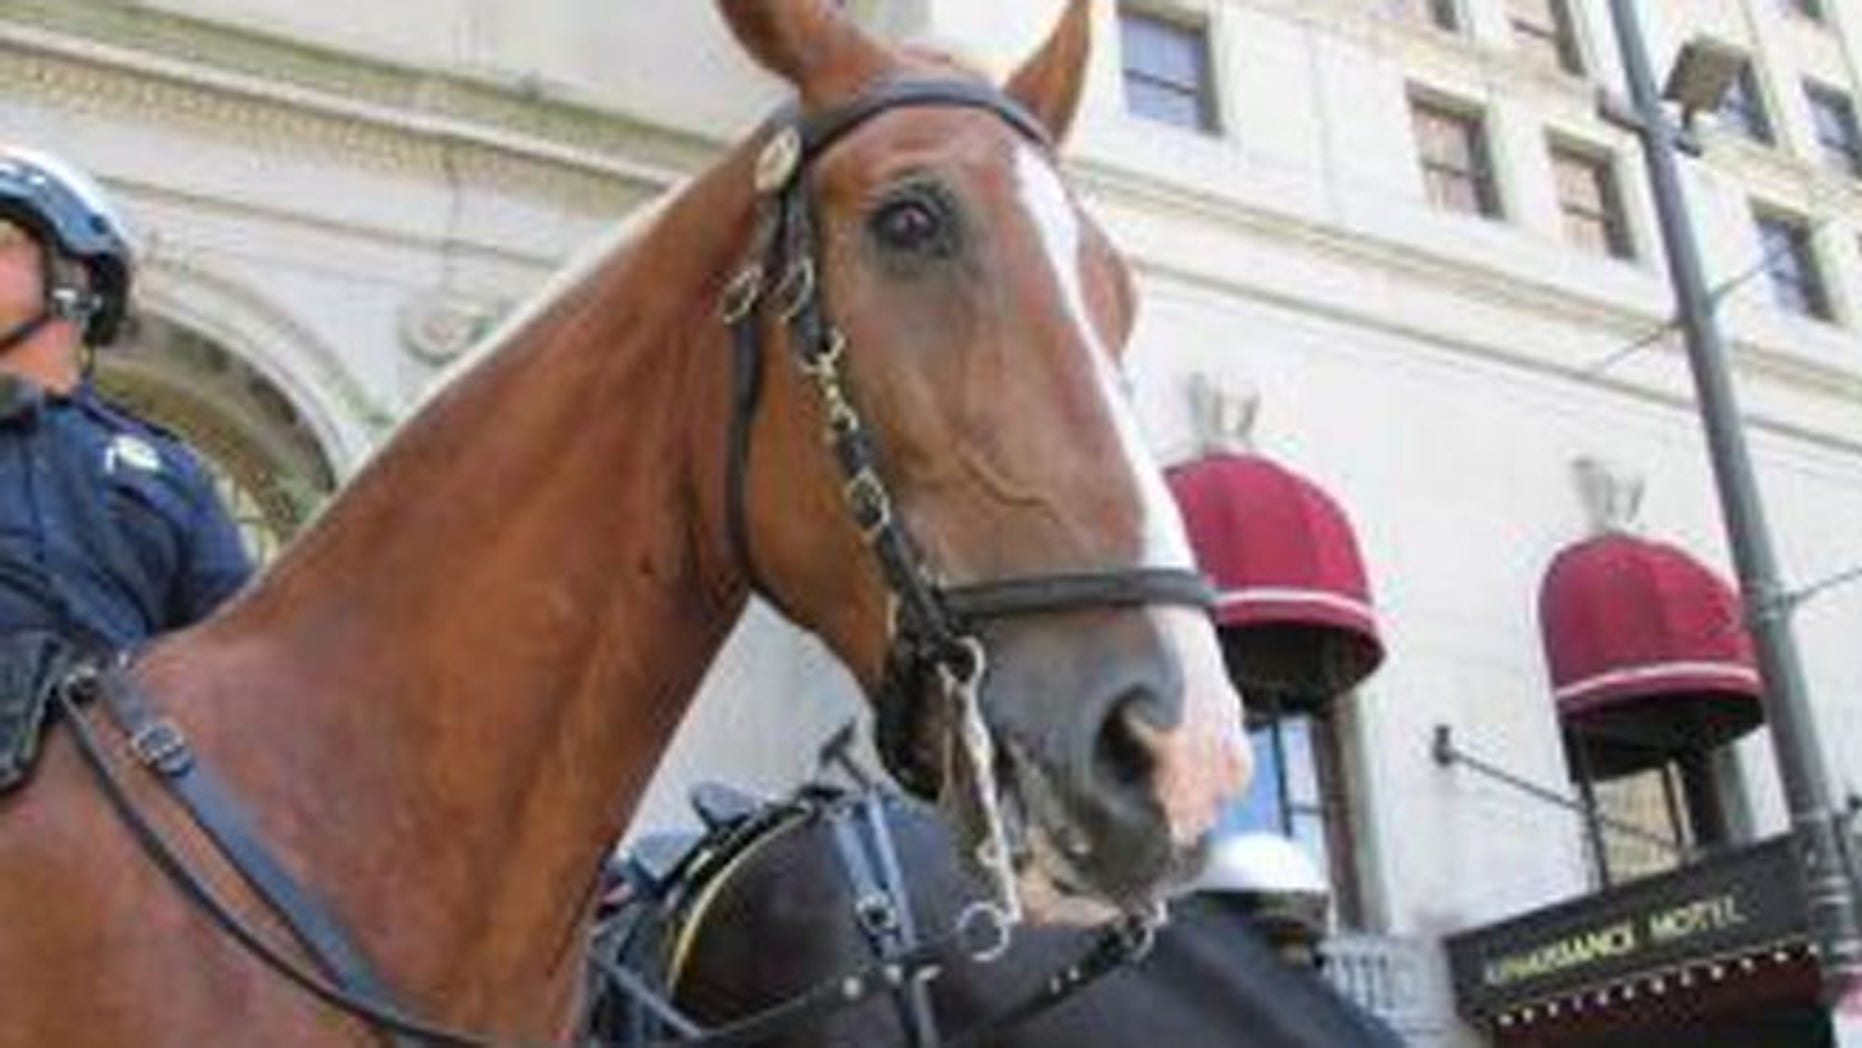 A Cleveland police officer said he witnessed an assault and followed the suspect on horseback.